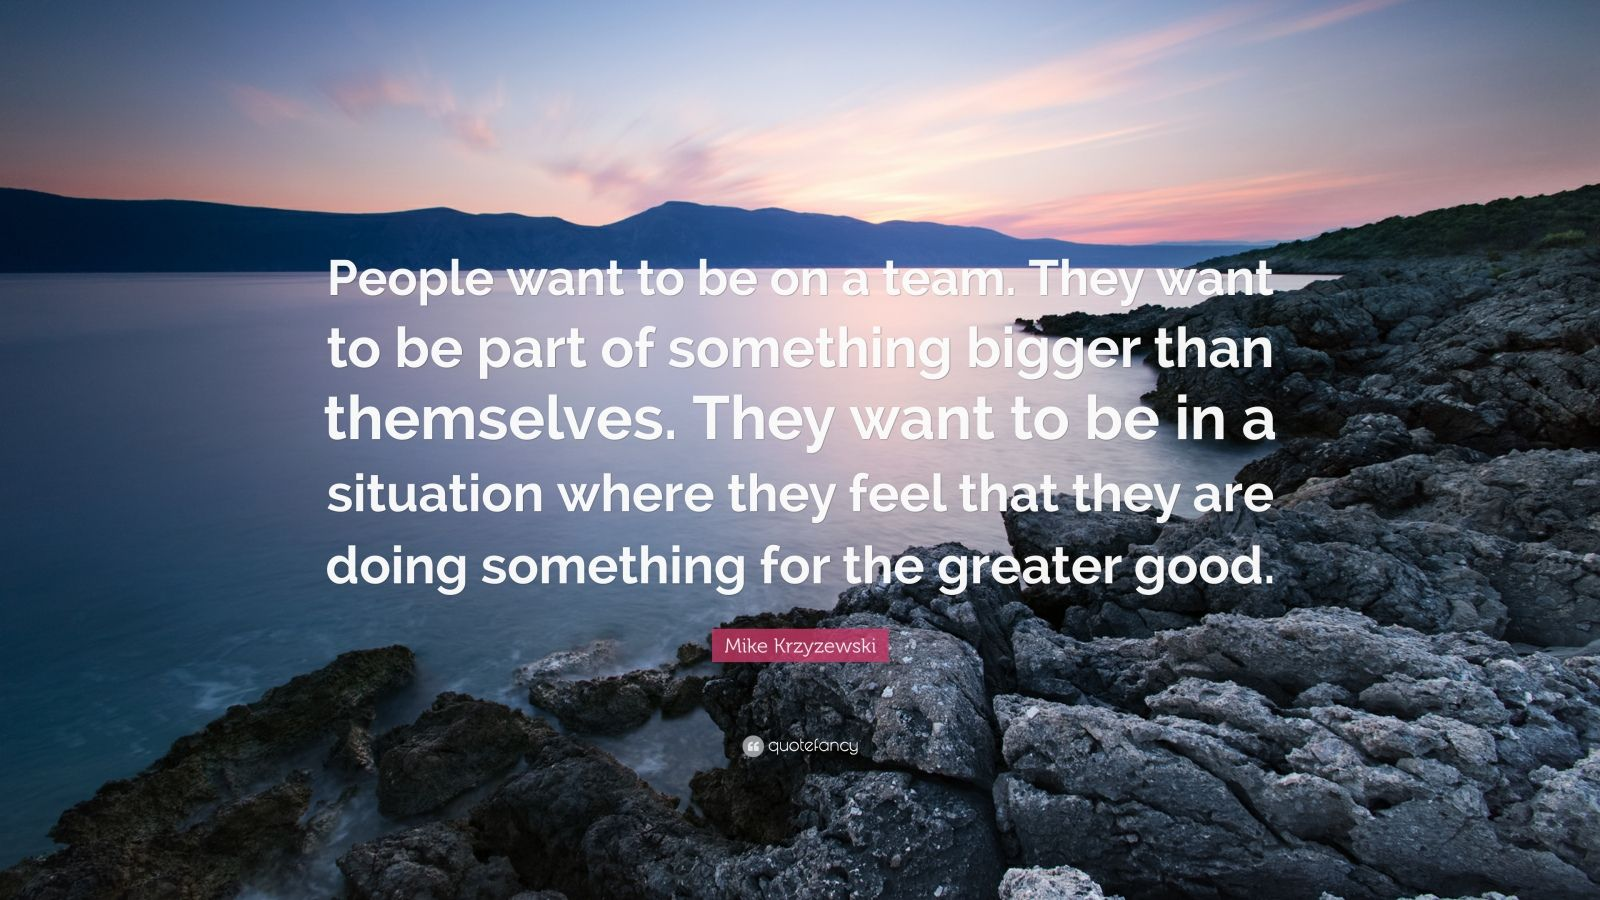 """Mike Krzyzewski Quote: """"People want to be on a team. They want to be part of something bigger than themselves. They want to be in a situation where they feel that they are doing something for the greater good."""""""